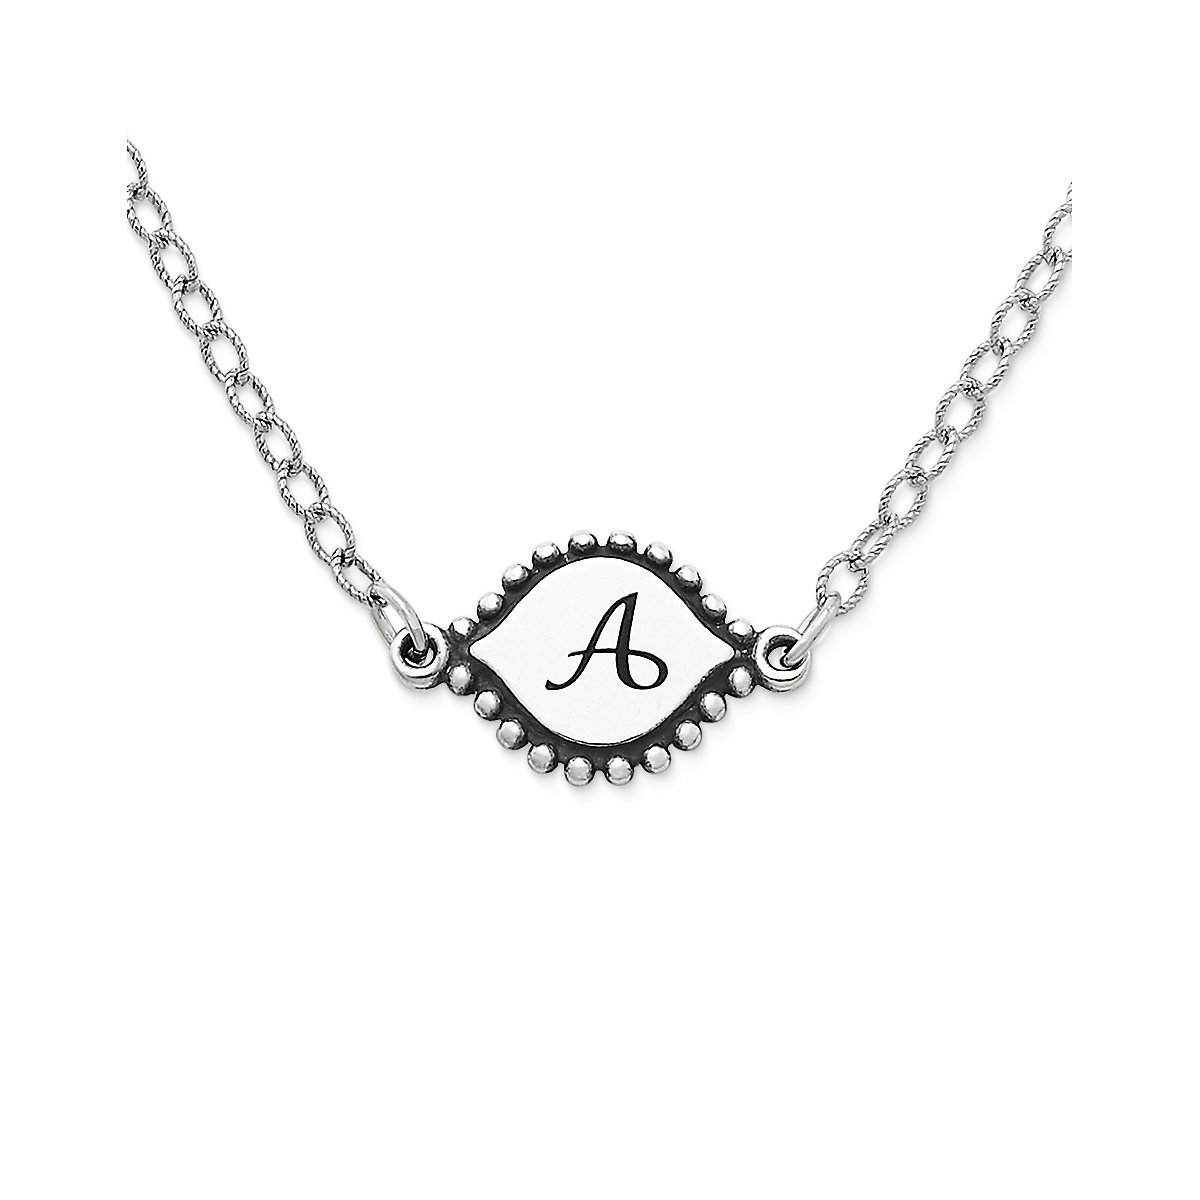 transformation necklace aunt your for engraving ni asset products favorite with niece my options